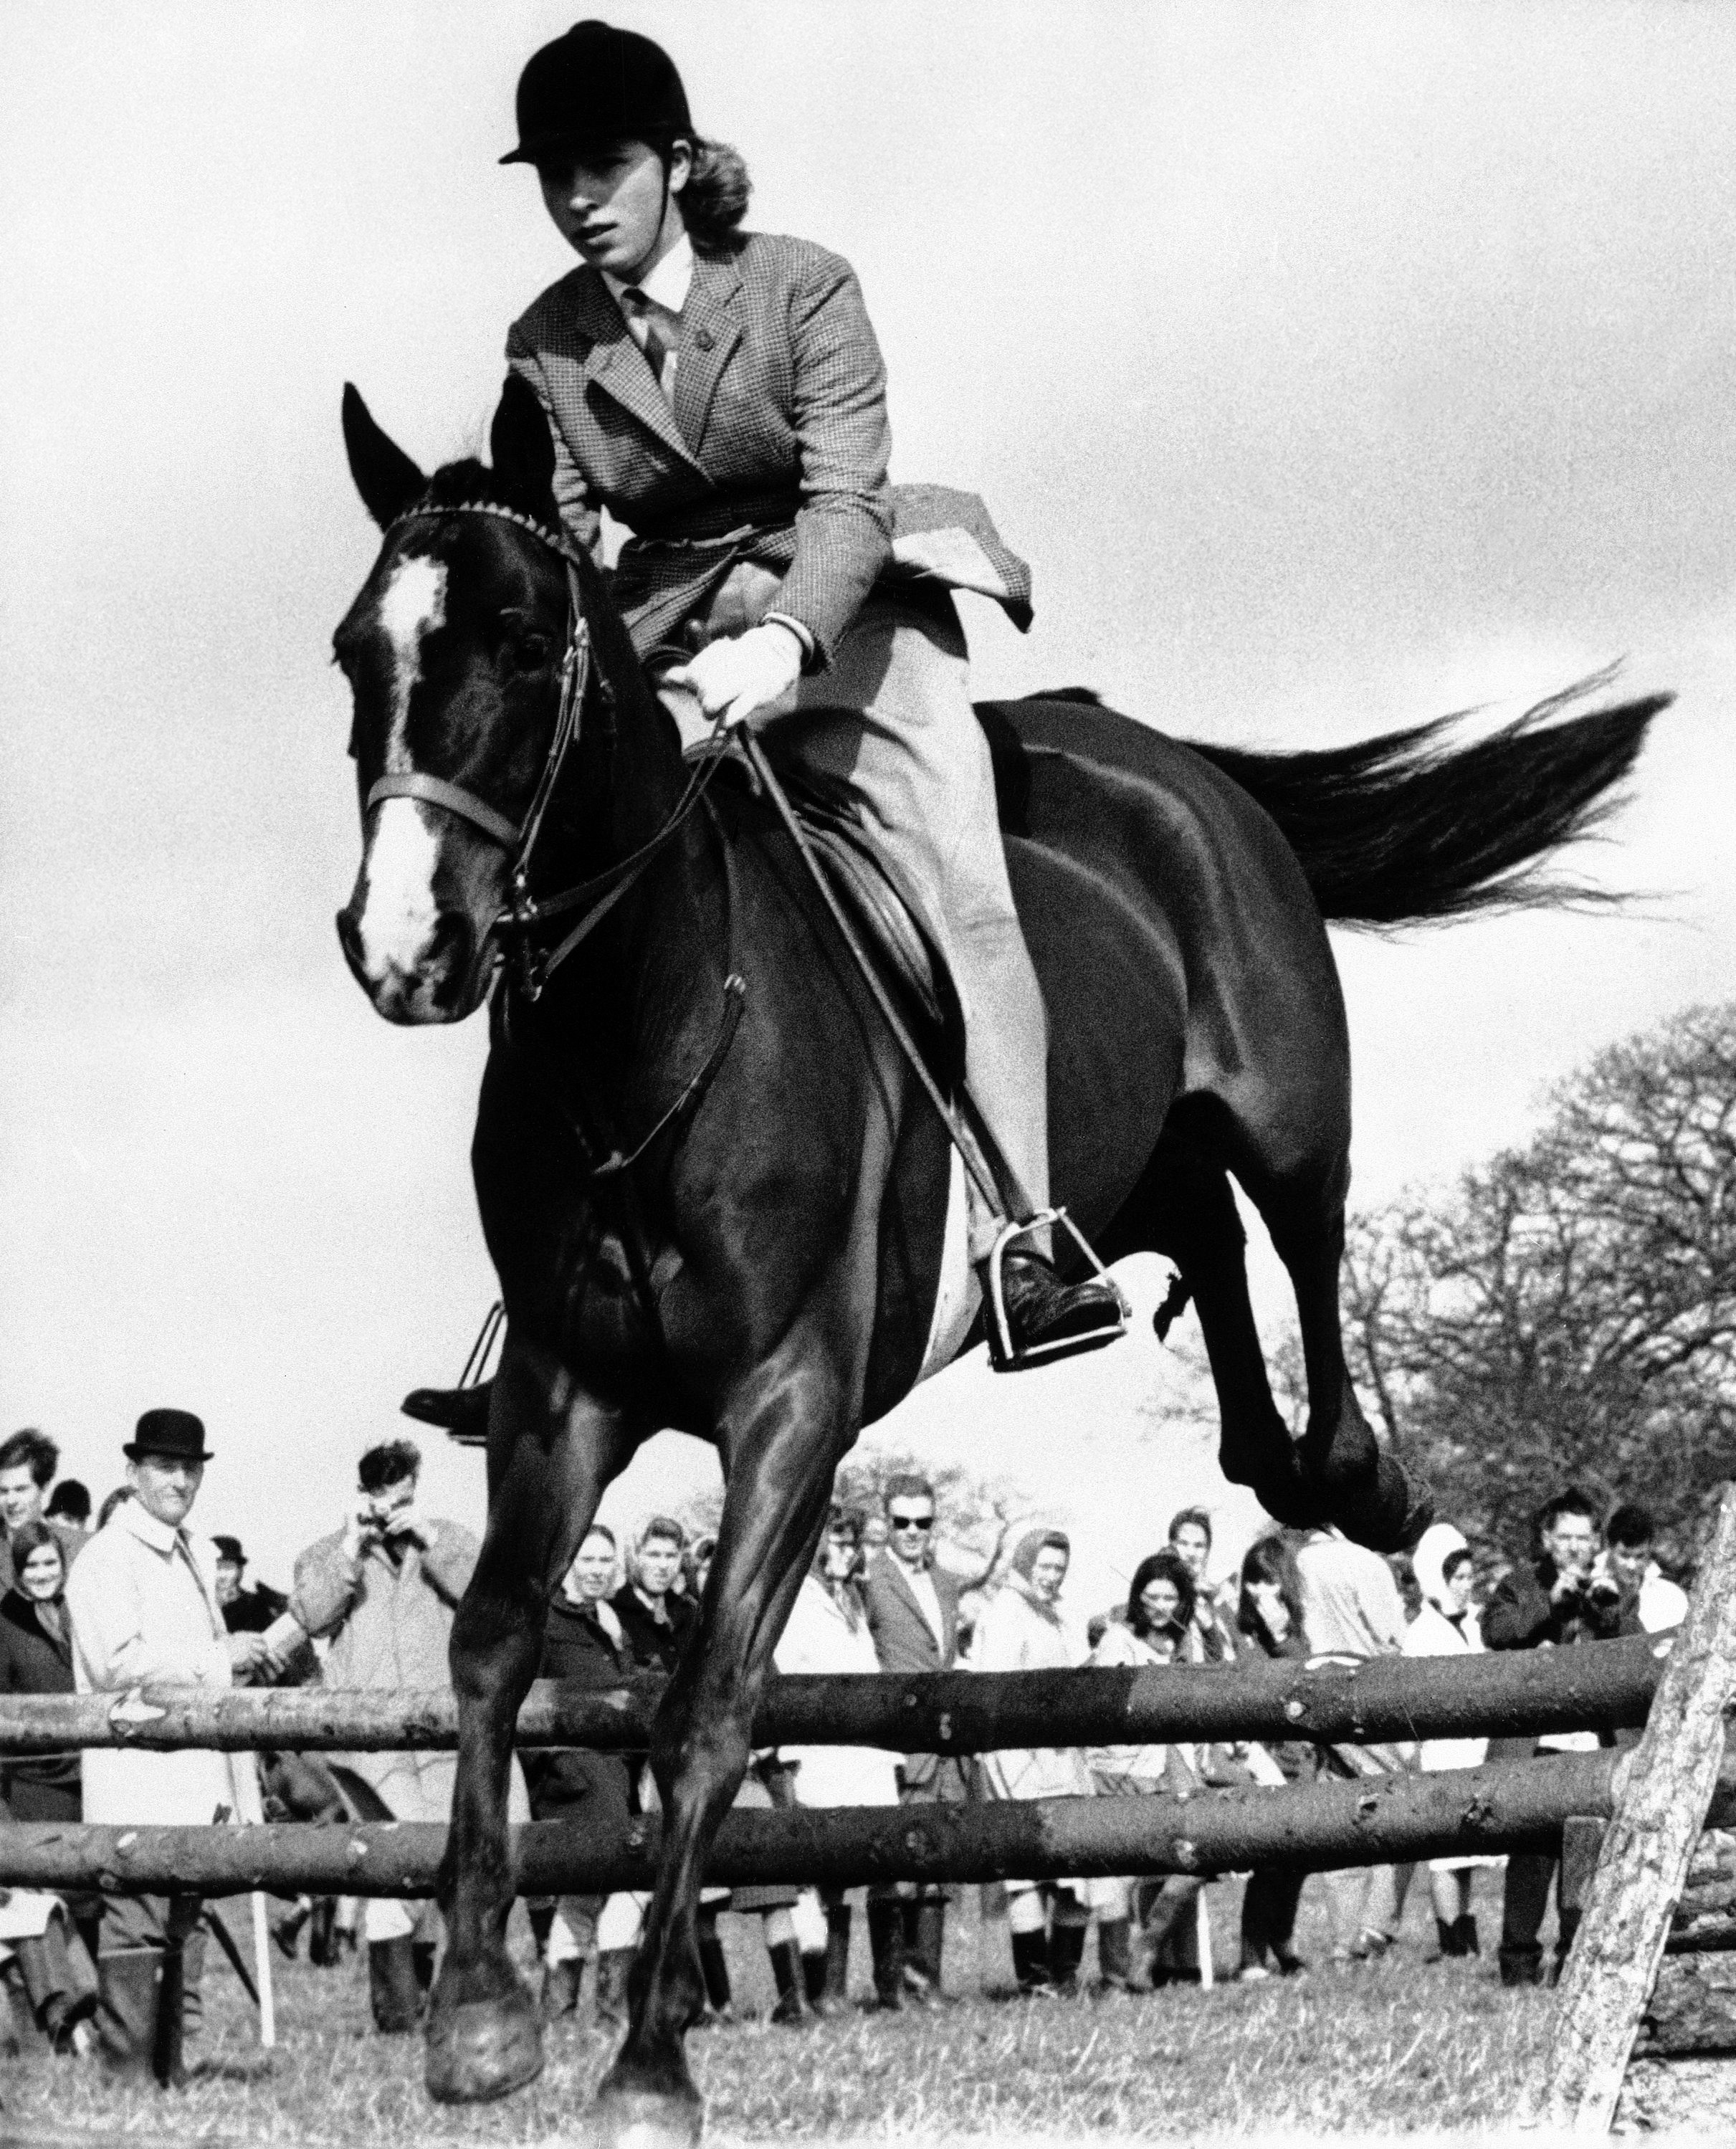 The Princess Royal riding in 1965